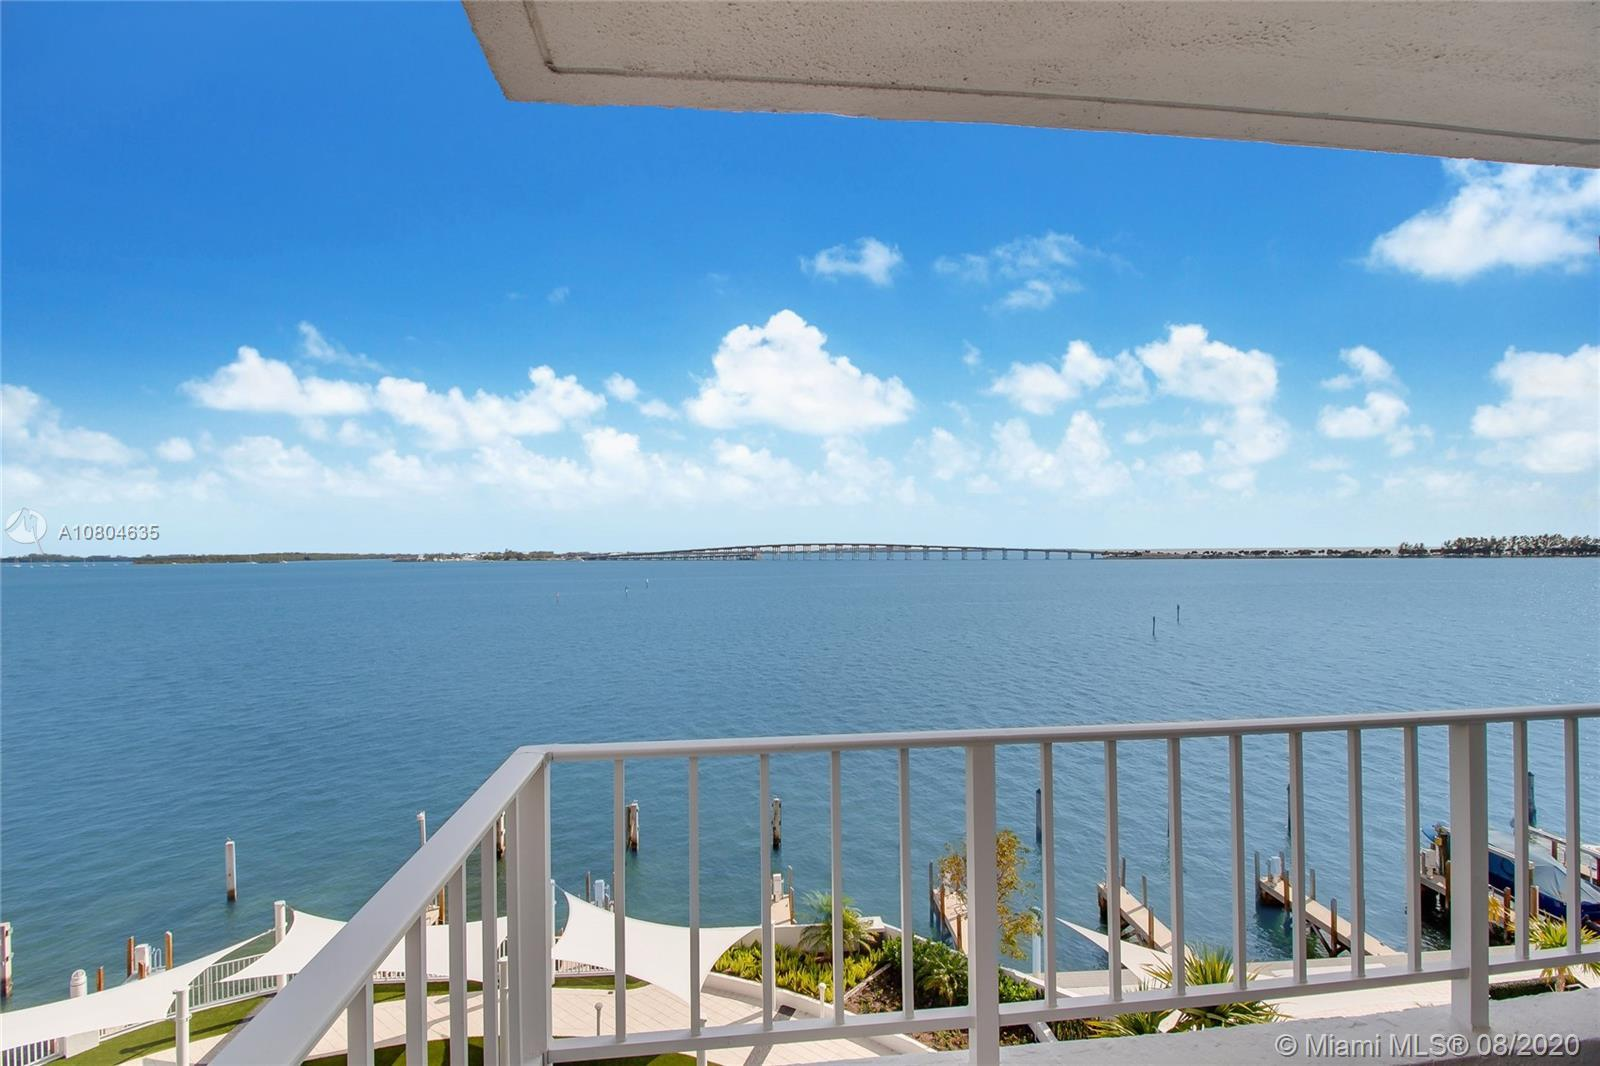 Smashing vistas of Biscayne Bay right from your pillow! This corner unit not only enjoys direct wate